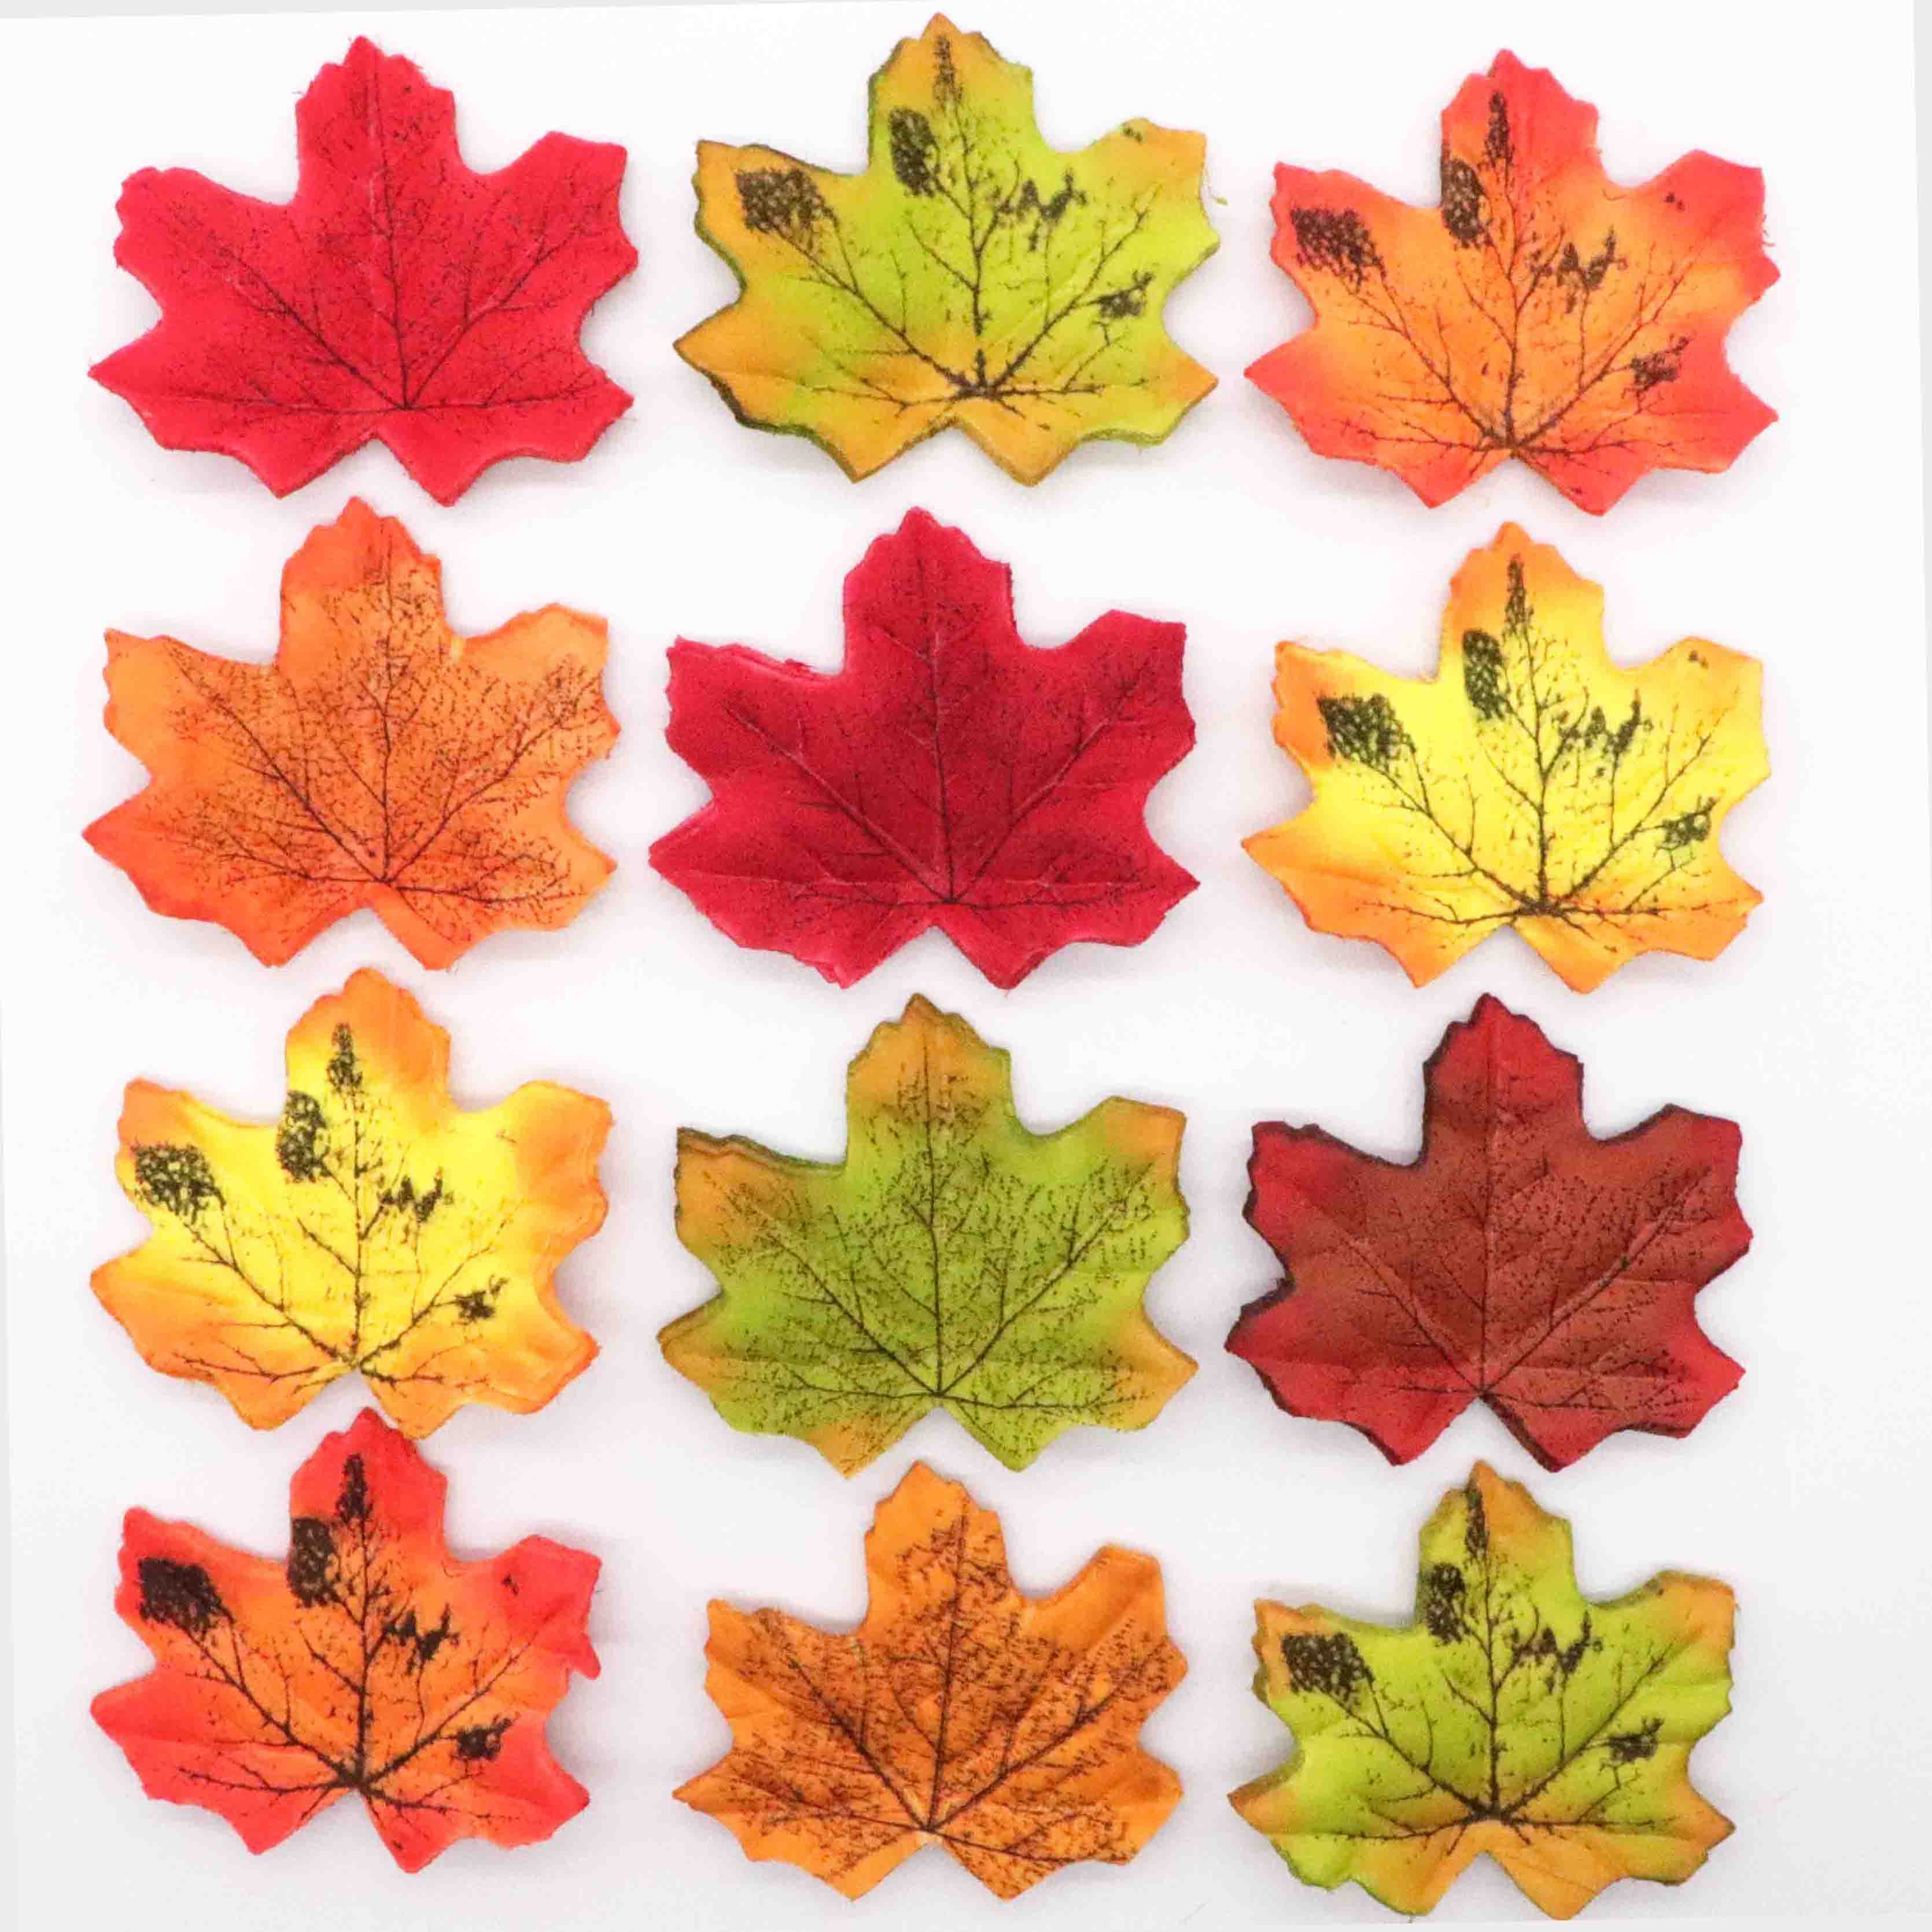 200pcs Assorted Autumn Maple Leaves Fall Leaf Wedding Home Garden Decoration